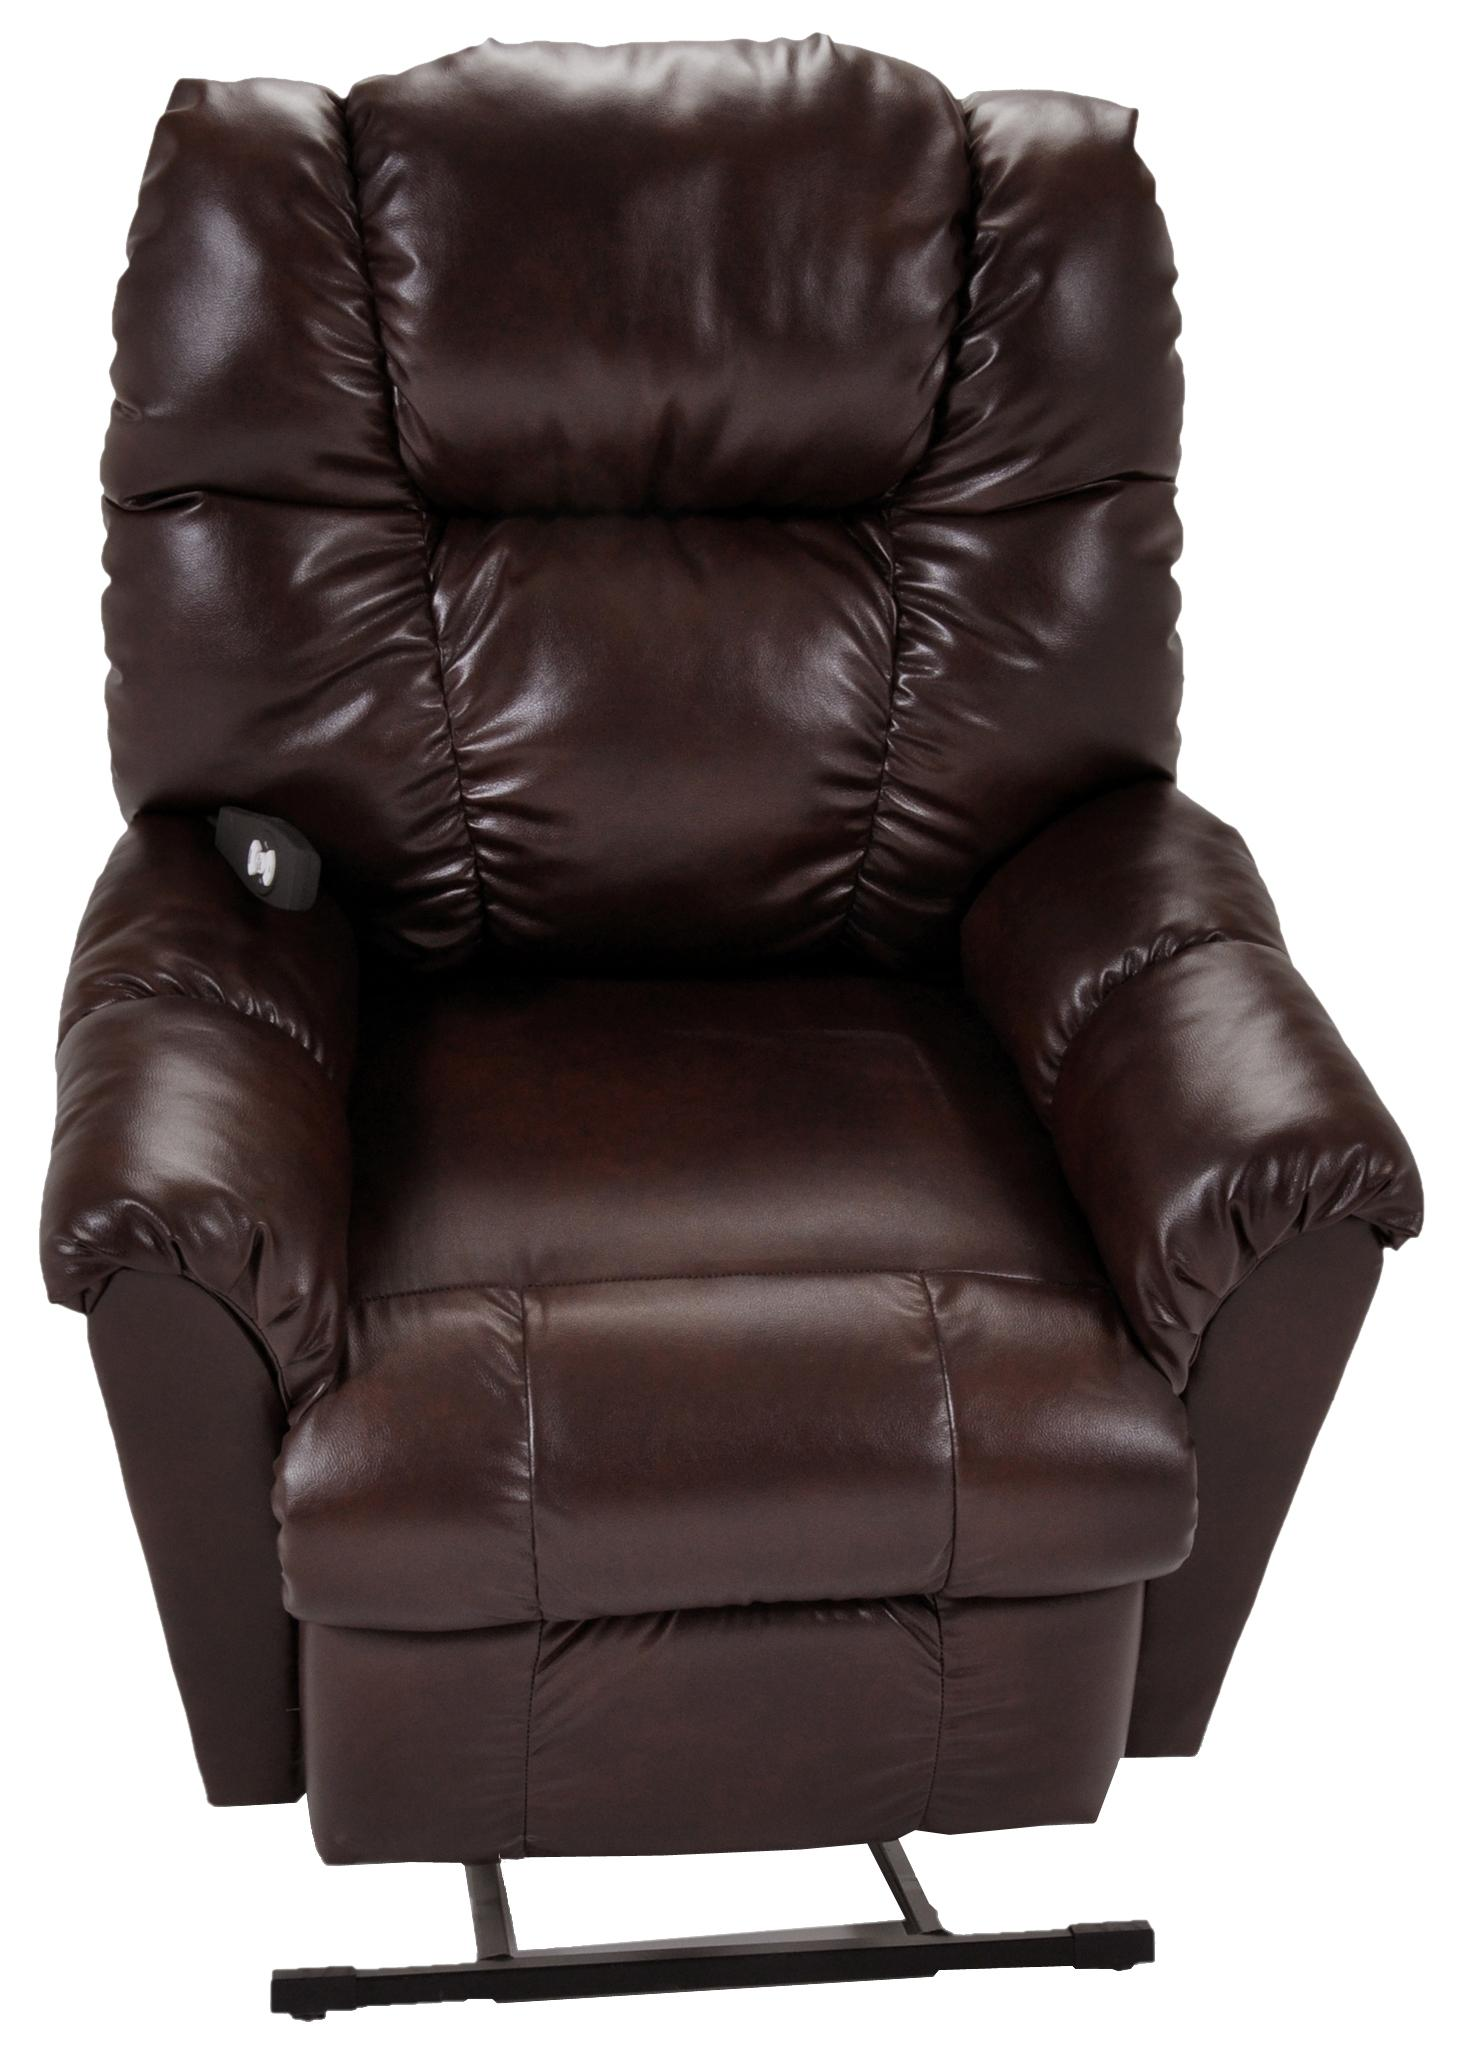 Franklin Franklin Recliners Kent Lift Recliner With Casual